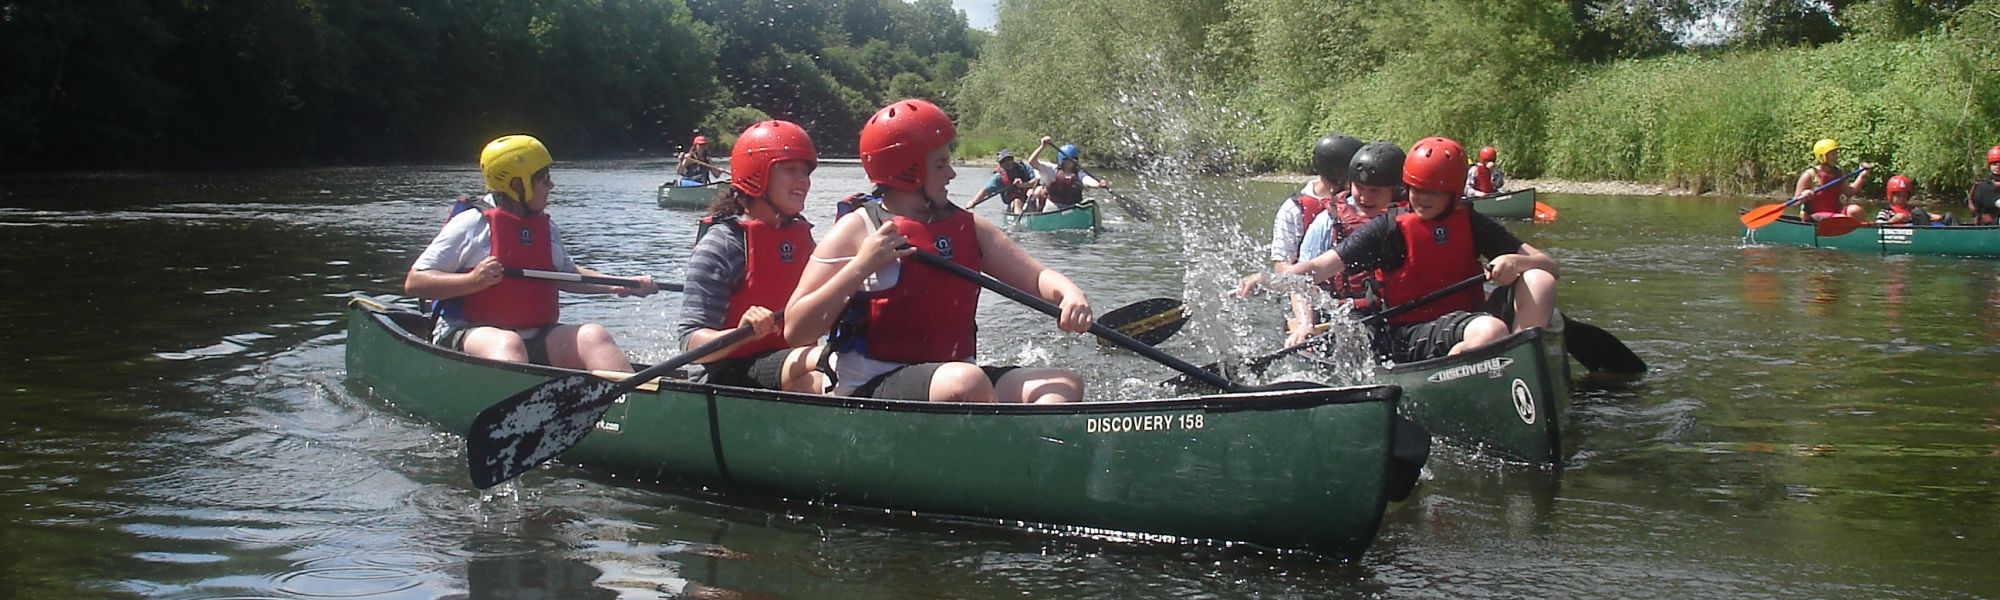 Canoeing and kayaking, fun water activities in Hay-on-Wye